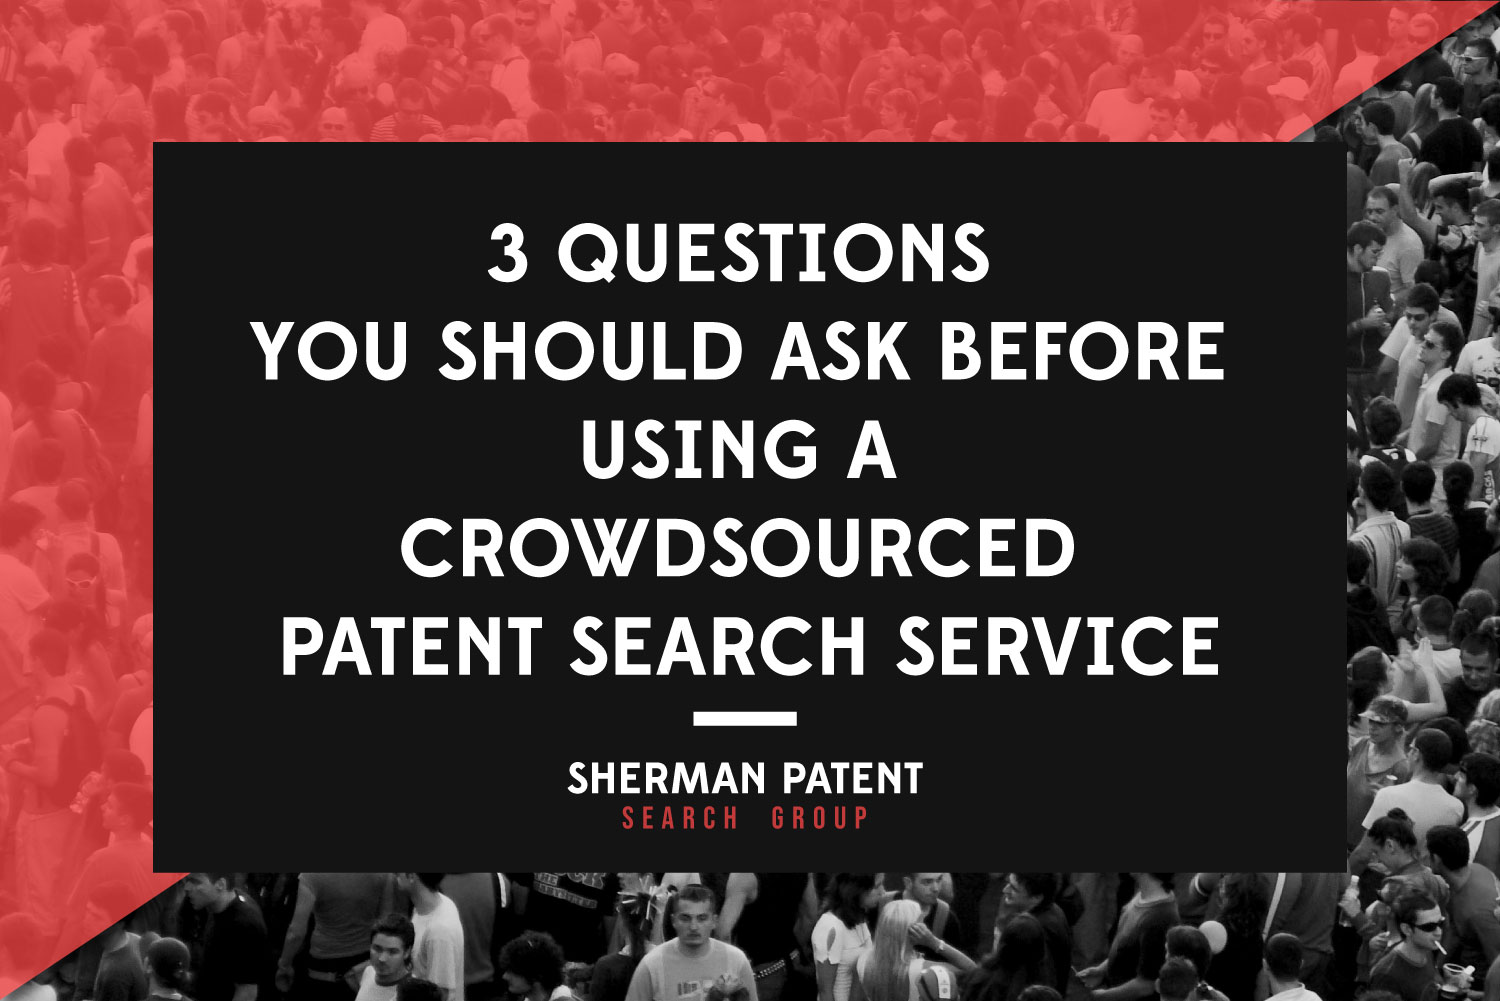 spsg-3-Questions-You-Should-Ask-Before-Using-a-Crowdsourced-Patent-Search-Service-web.jpg